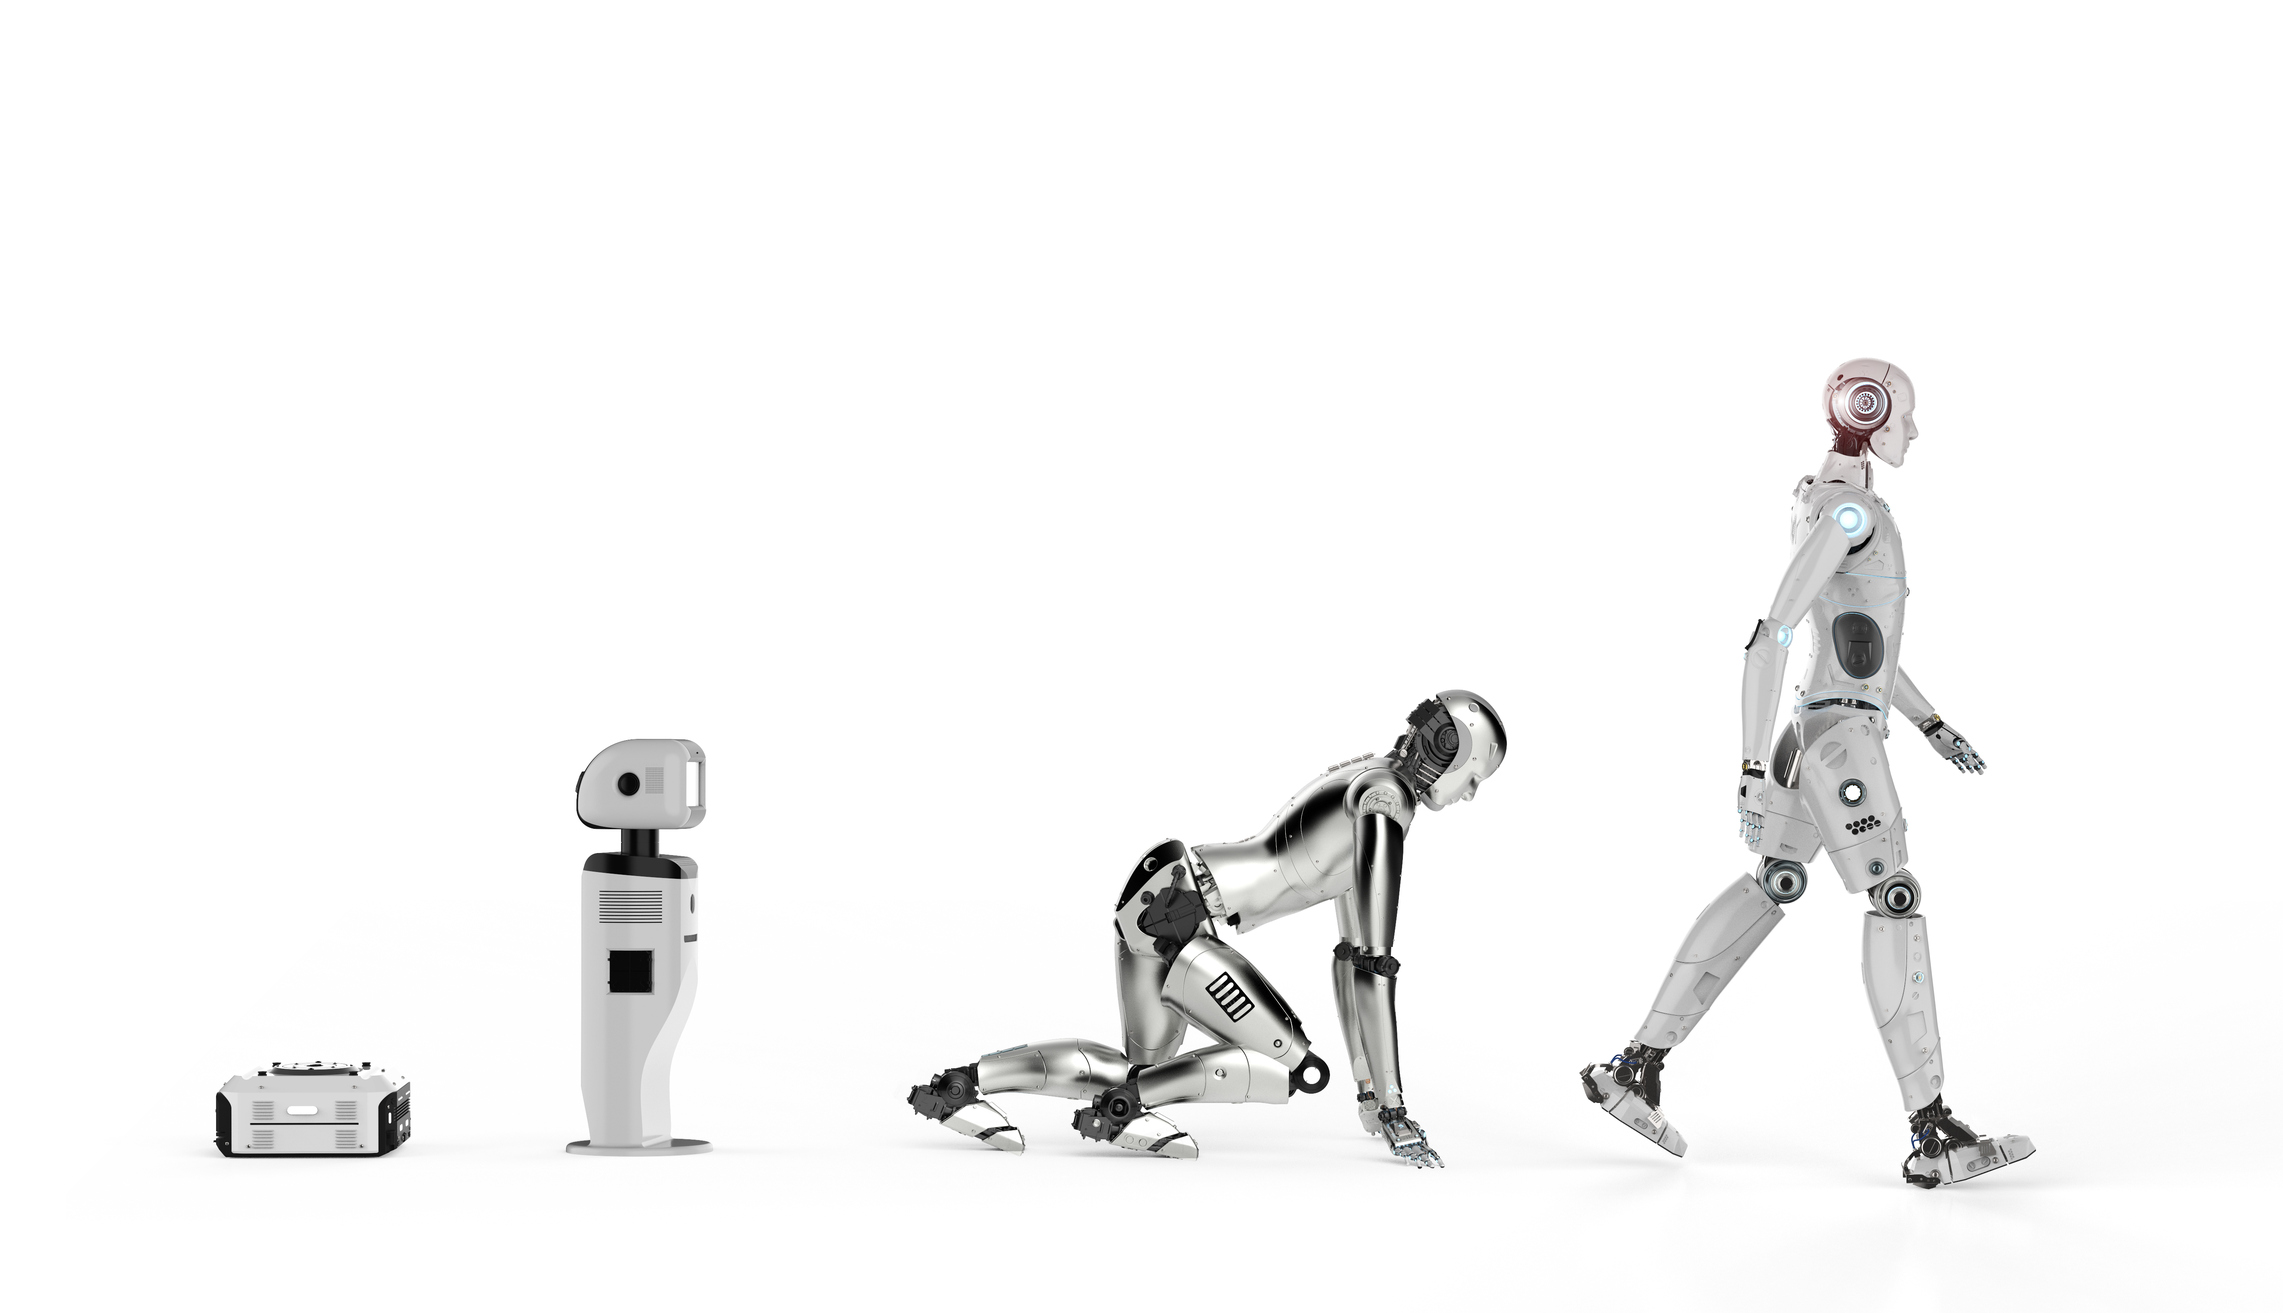 What is the most advanced robot around today?